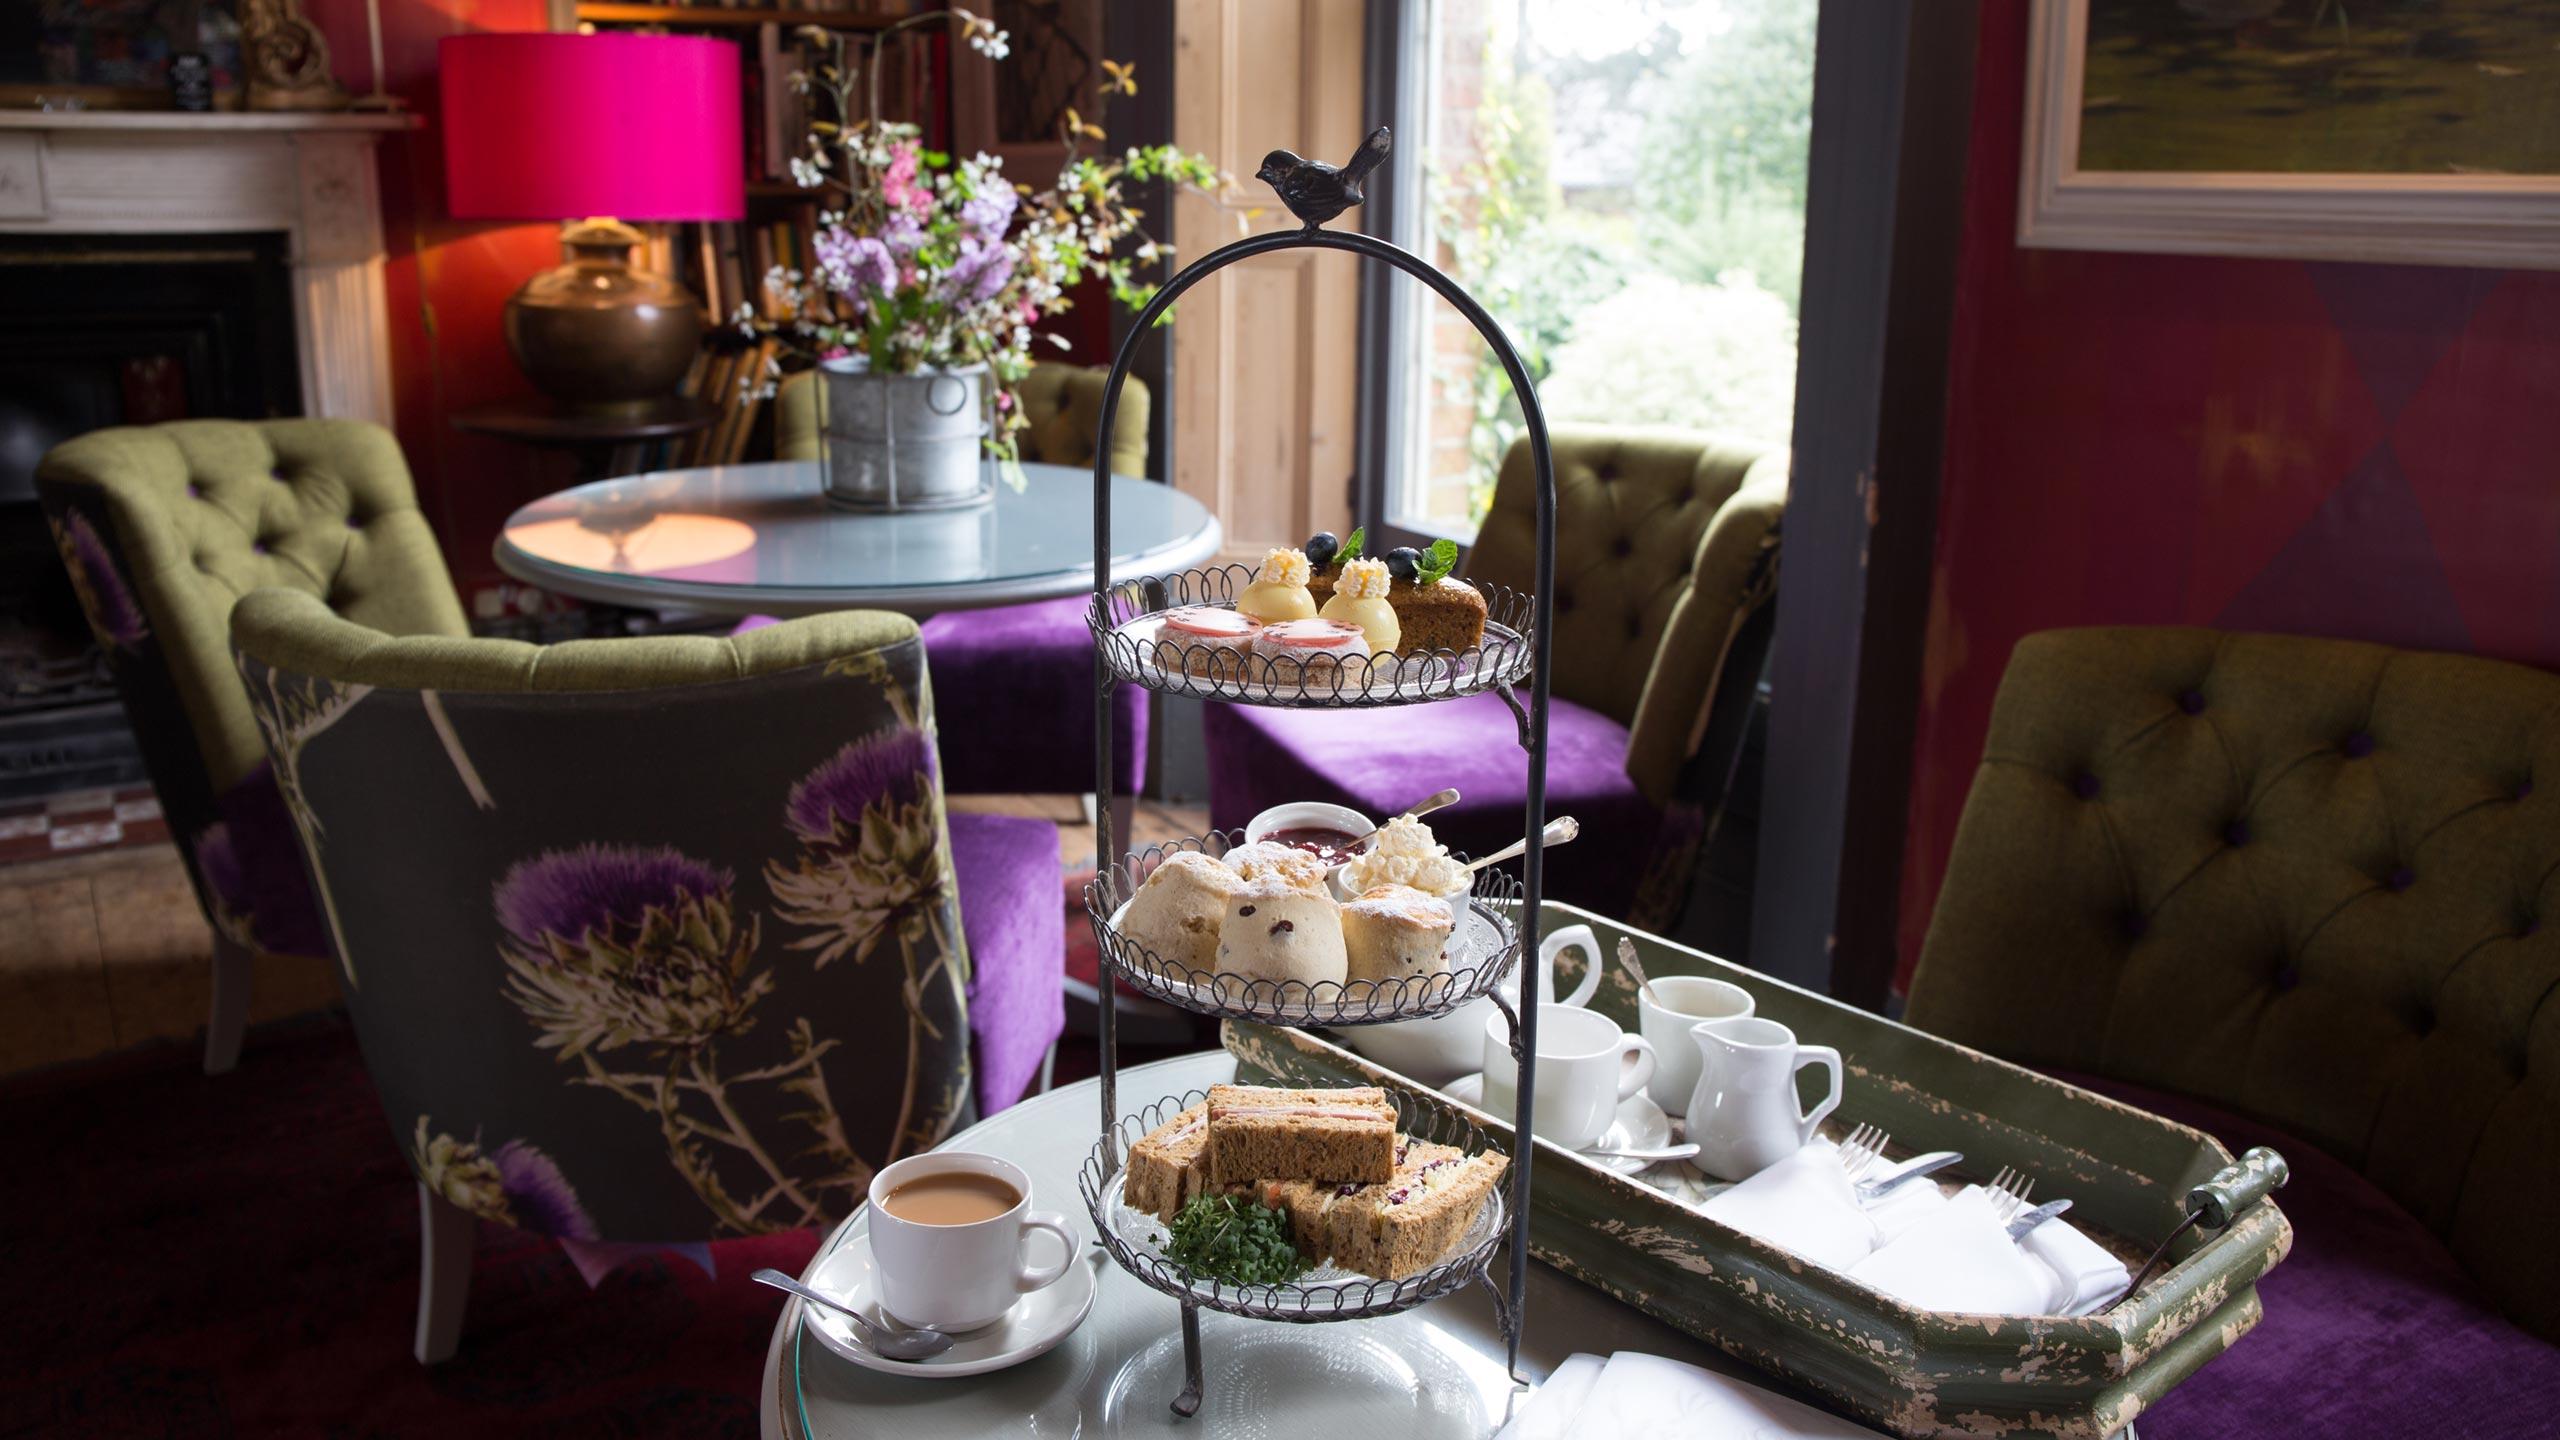 Strattons Hotel Afternoon Tea, Swaffham, Norfolk